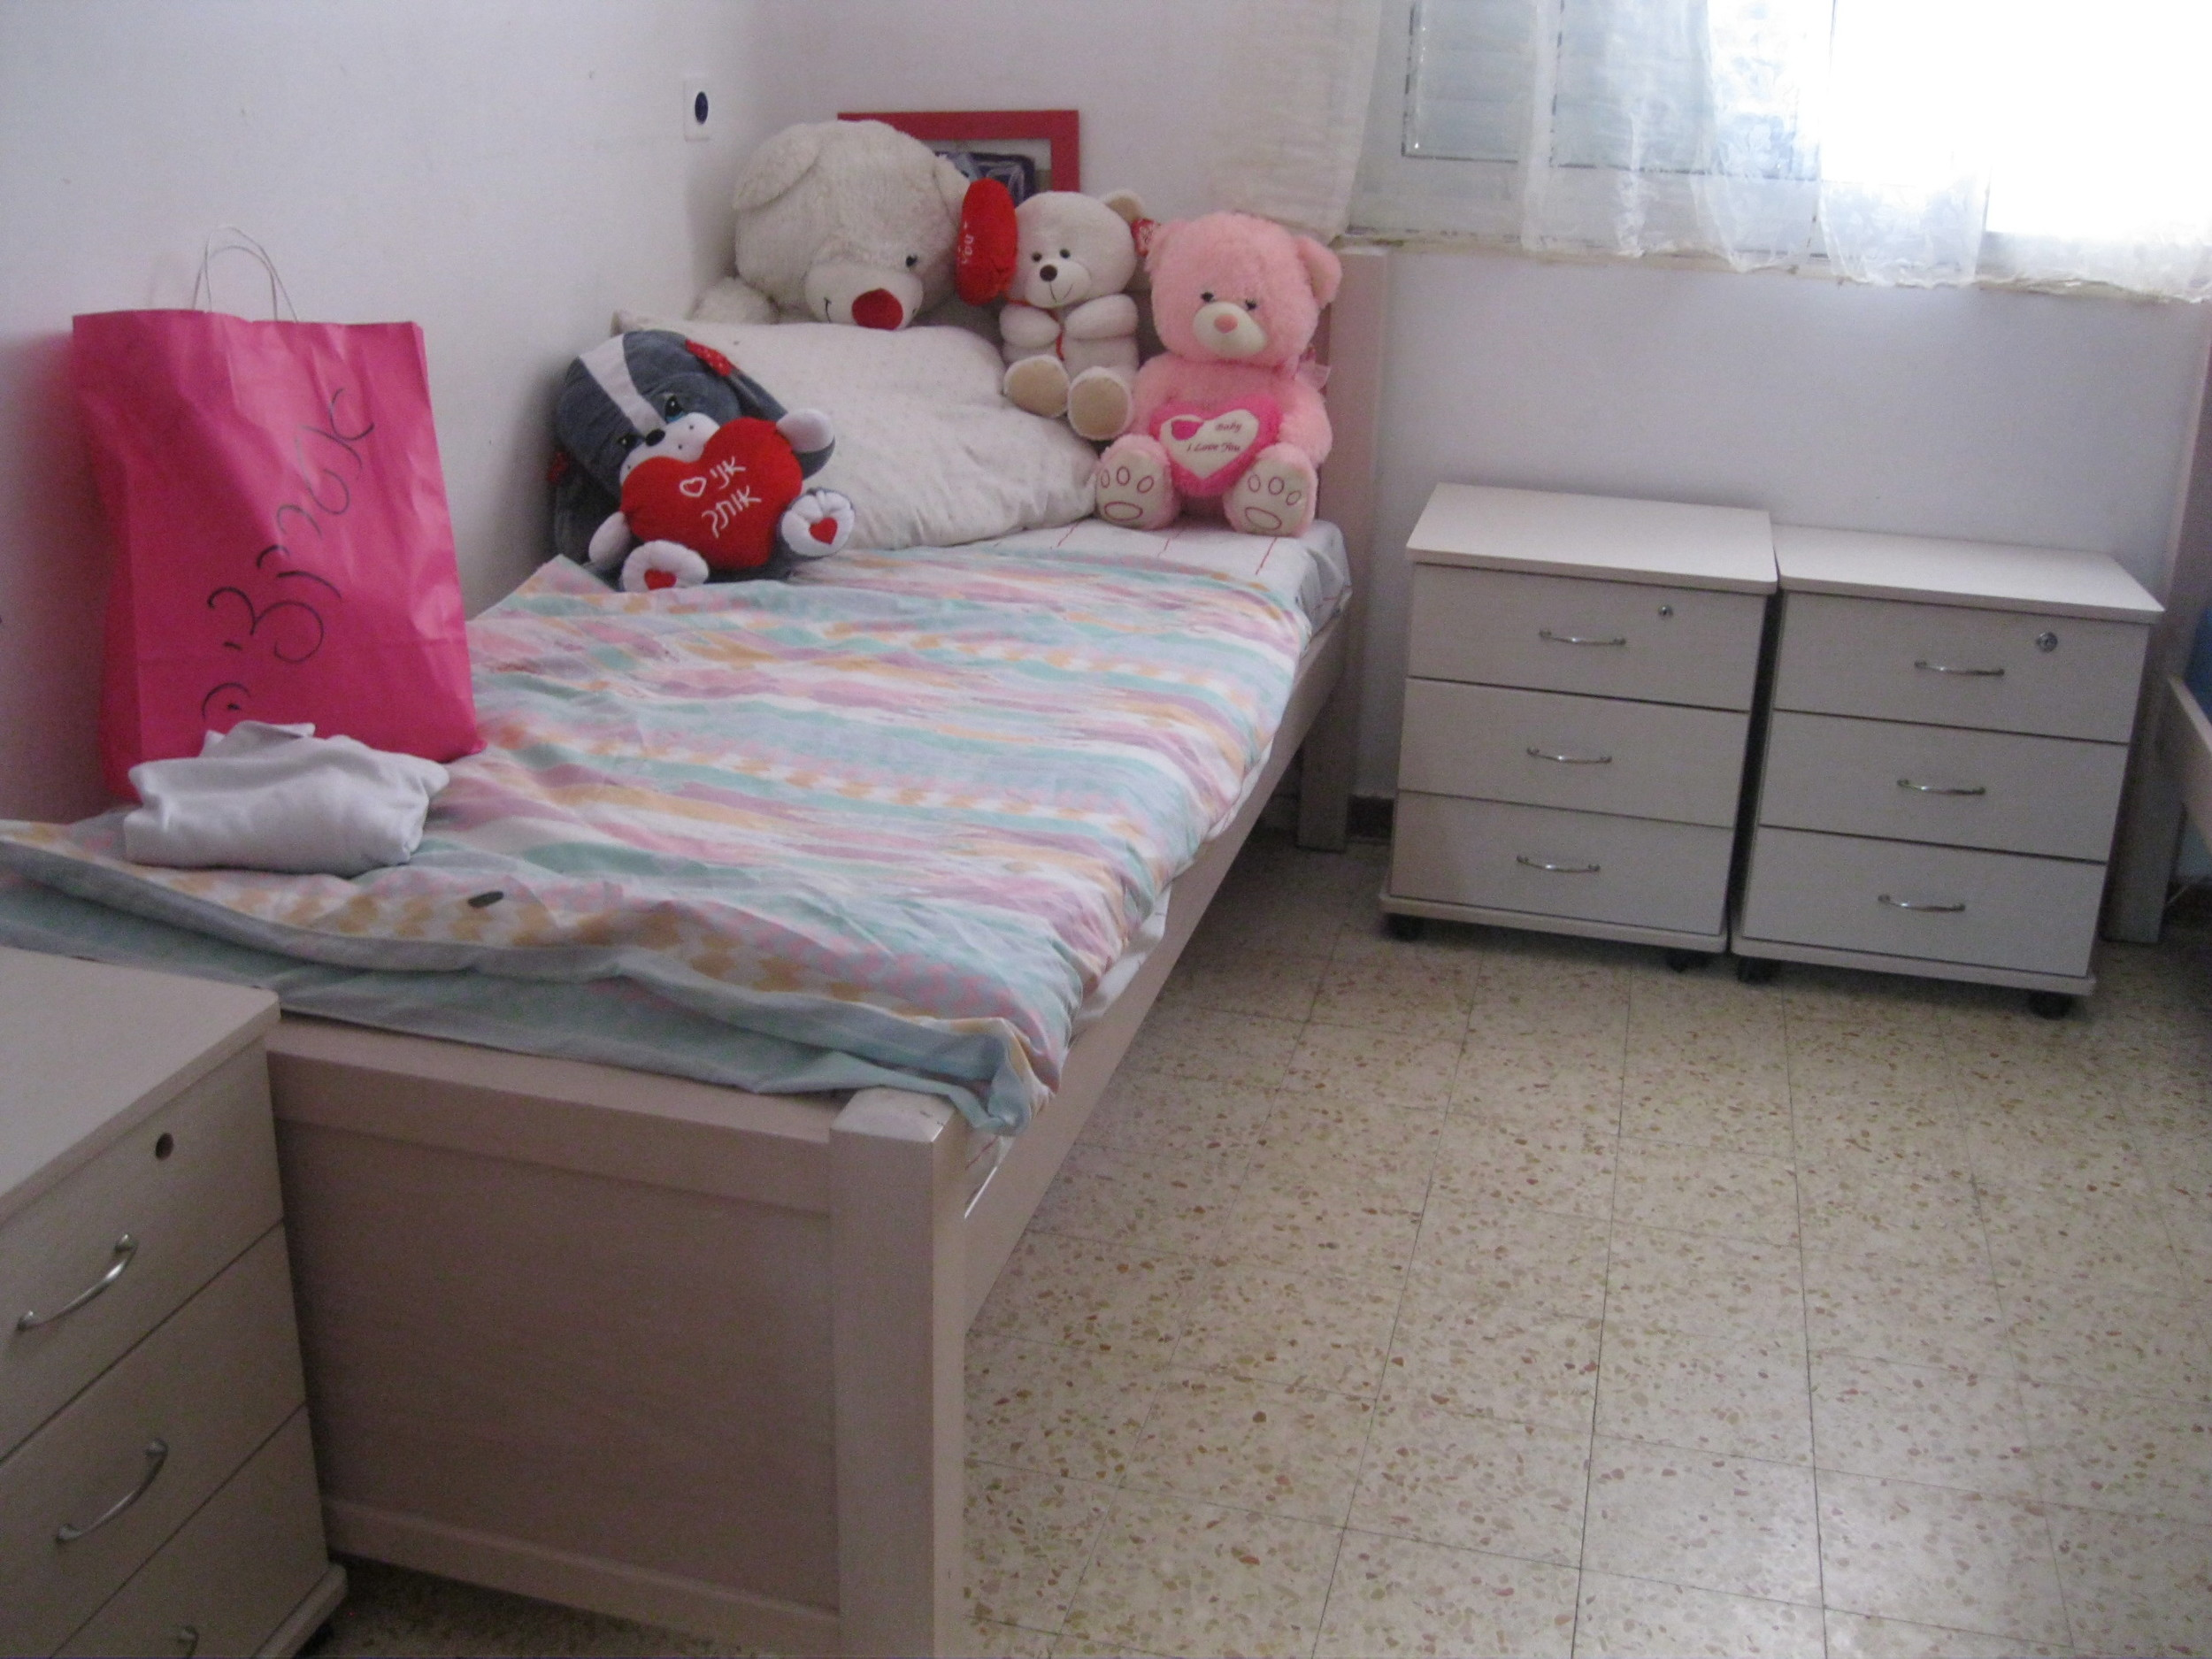 Bedrooms are shared. There is a bunkbed to the right of this, so there are three girls sharing this room.